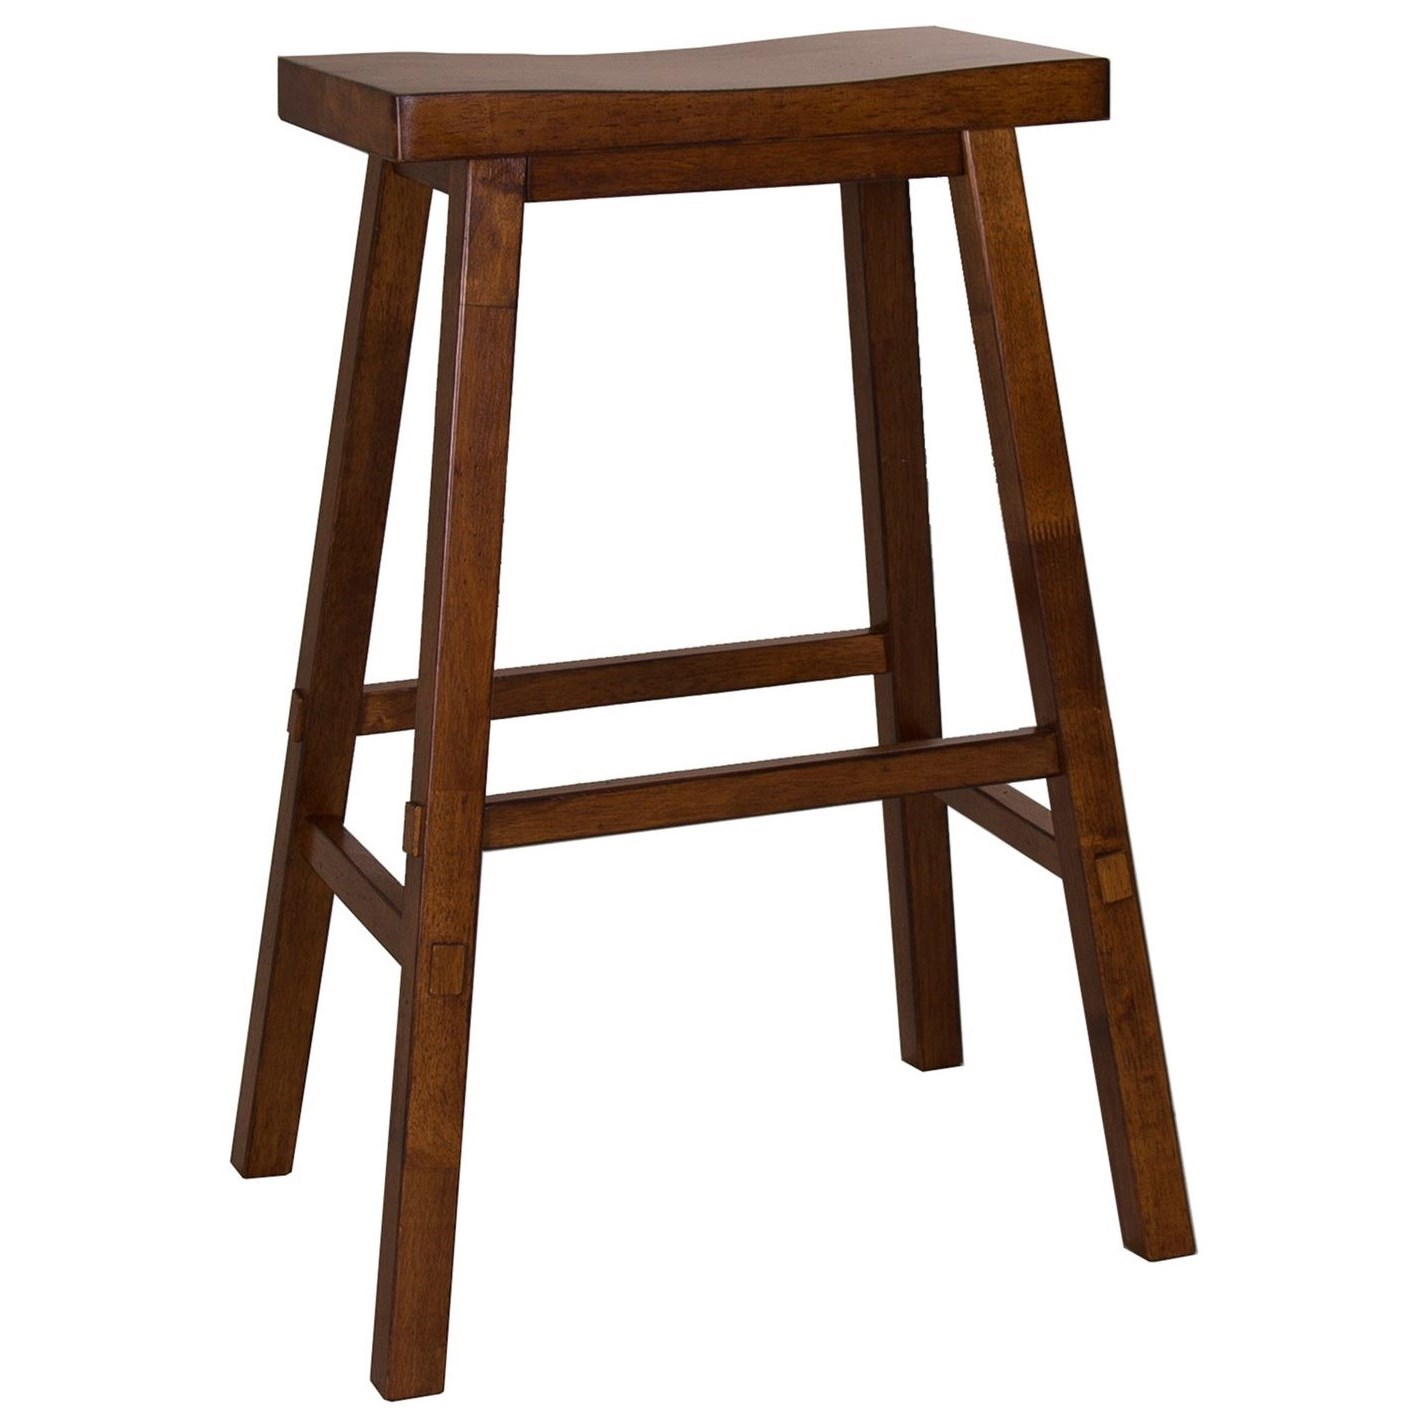 Creations II 30 Inch Sawhorse Barstool by Liberty Furniture at Steger's Furniture